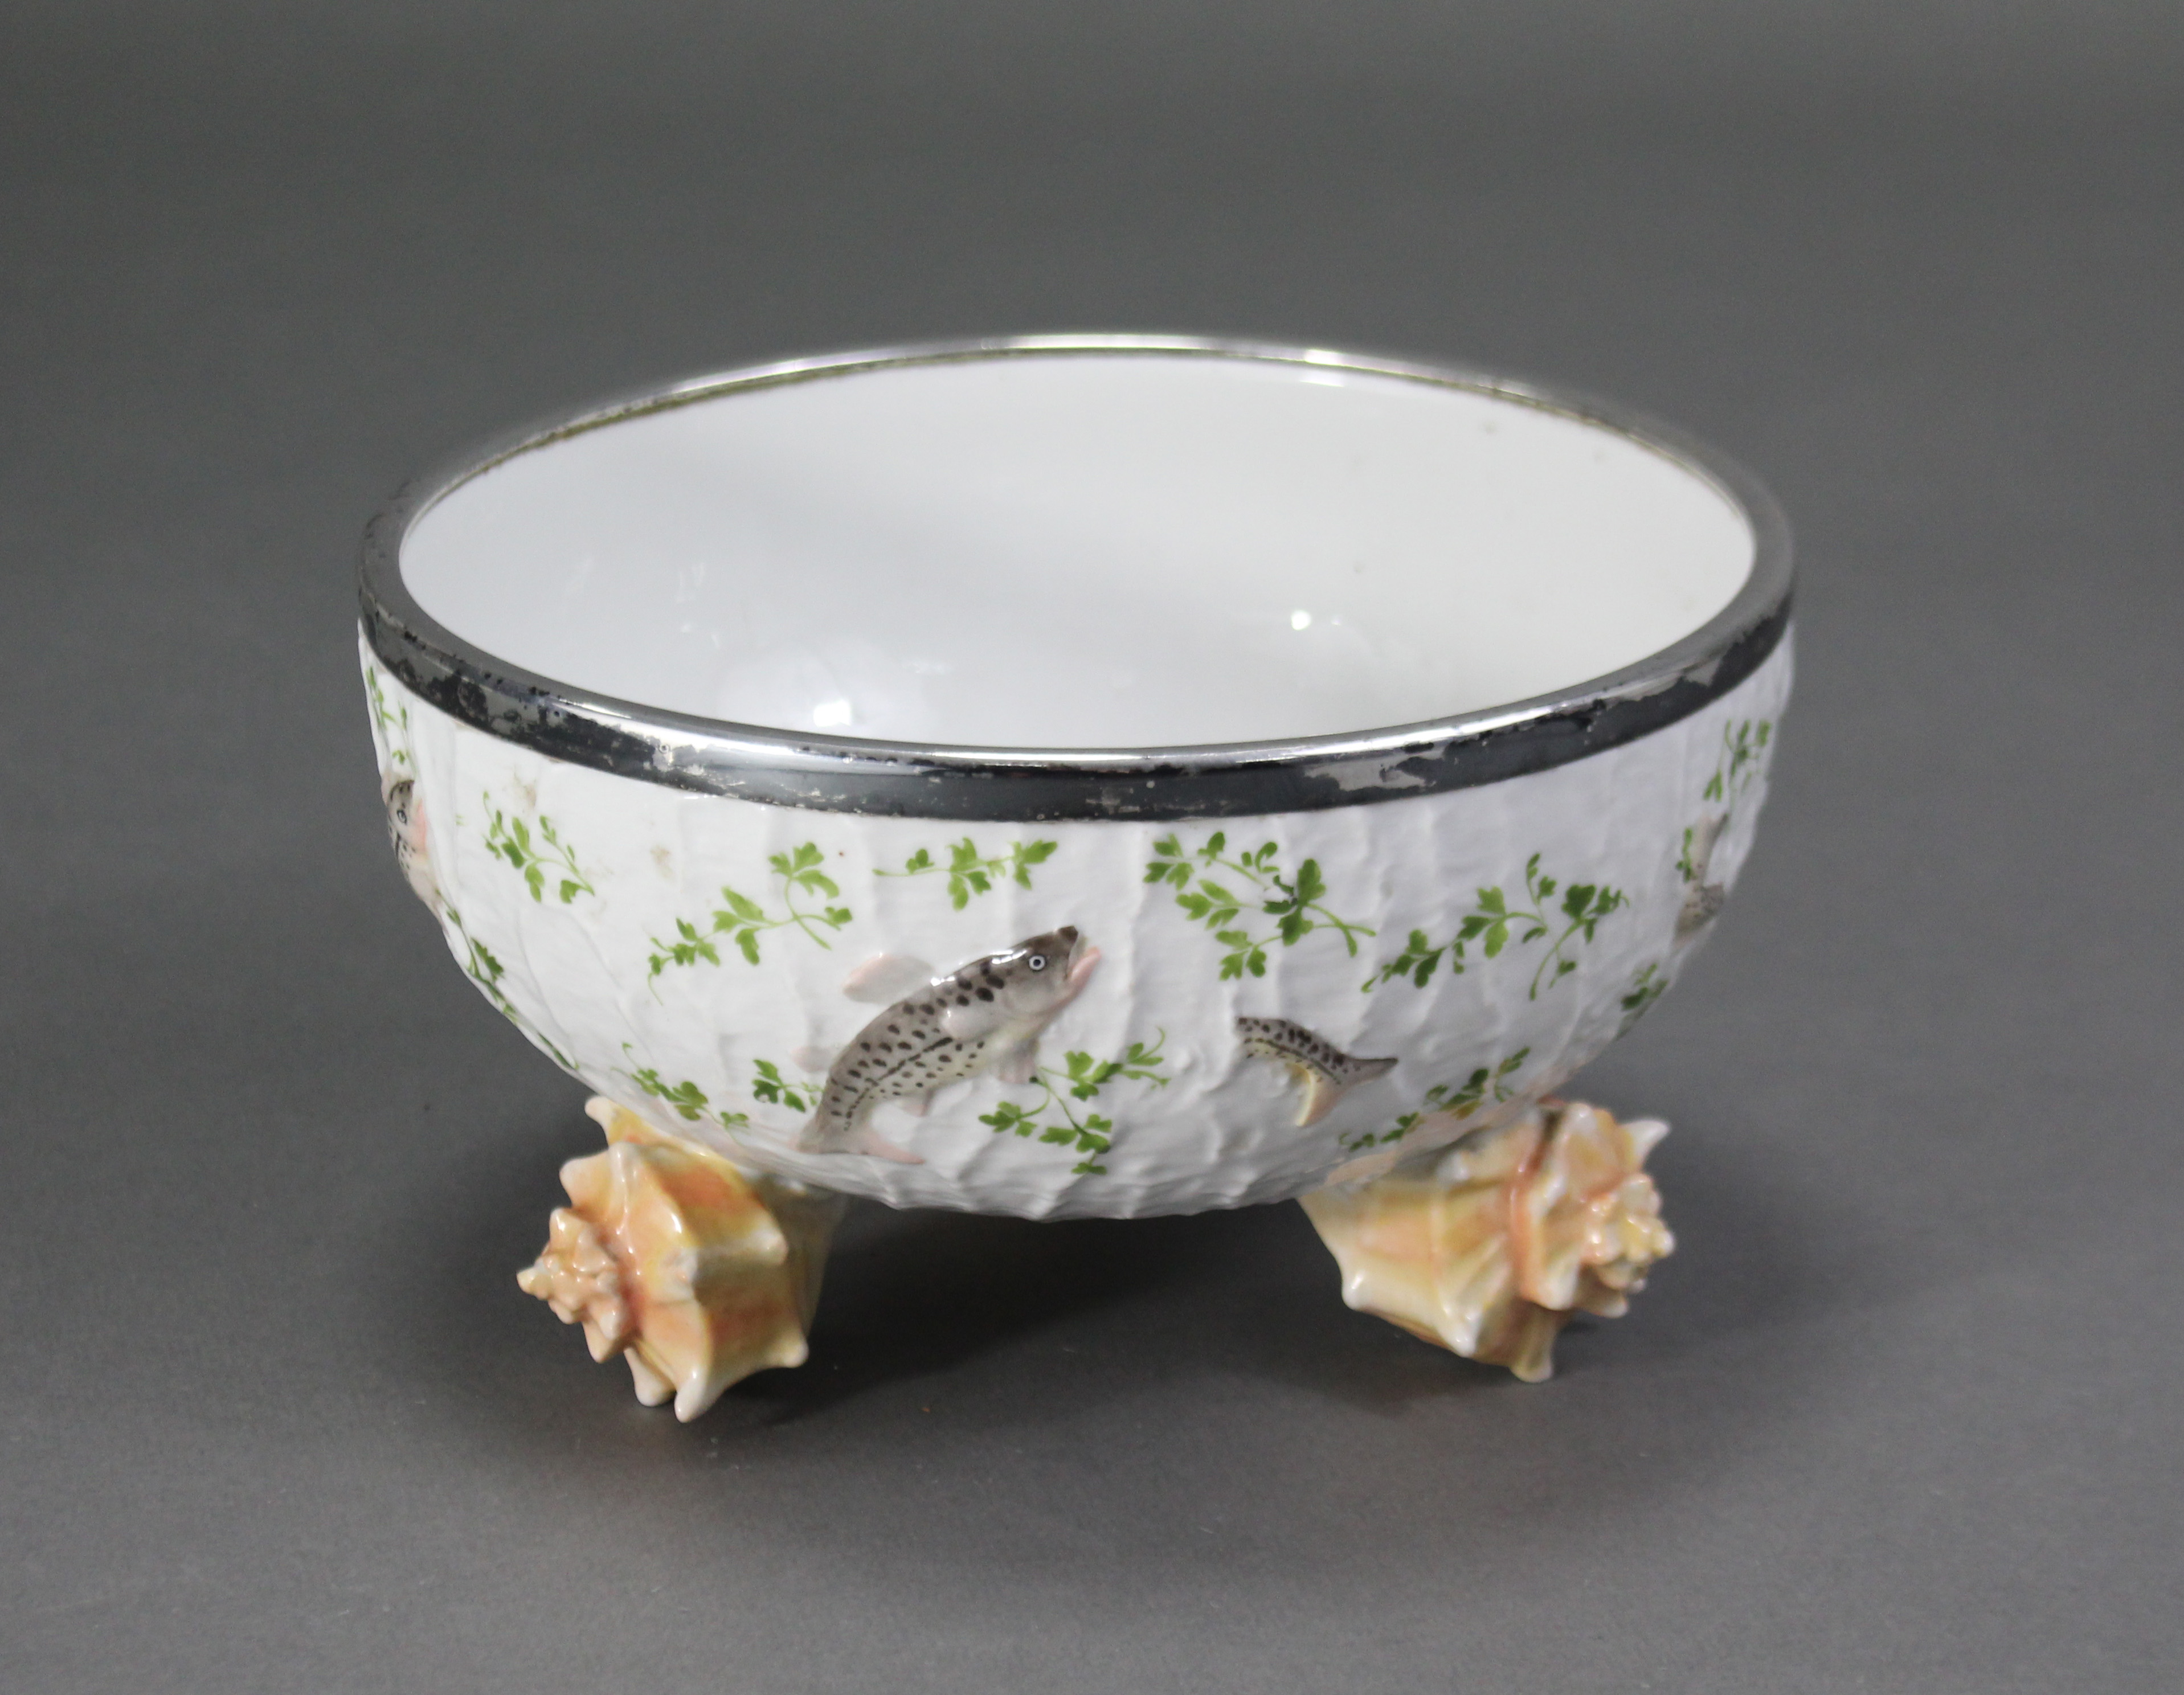 """Lot 173 - An early 20th century German porcelain bowl with silver-plated rim marked """"WMFN"""", the sides"""